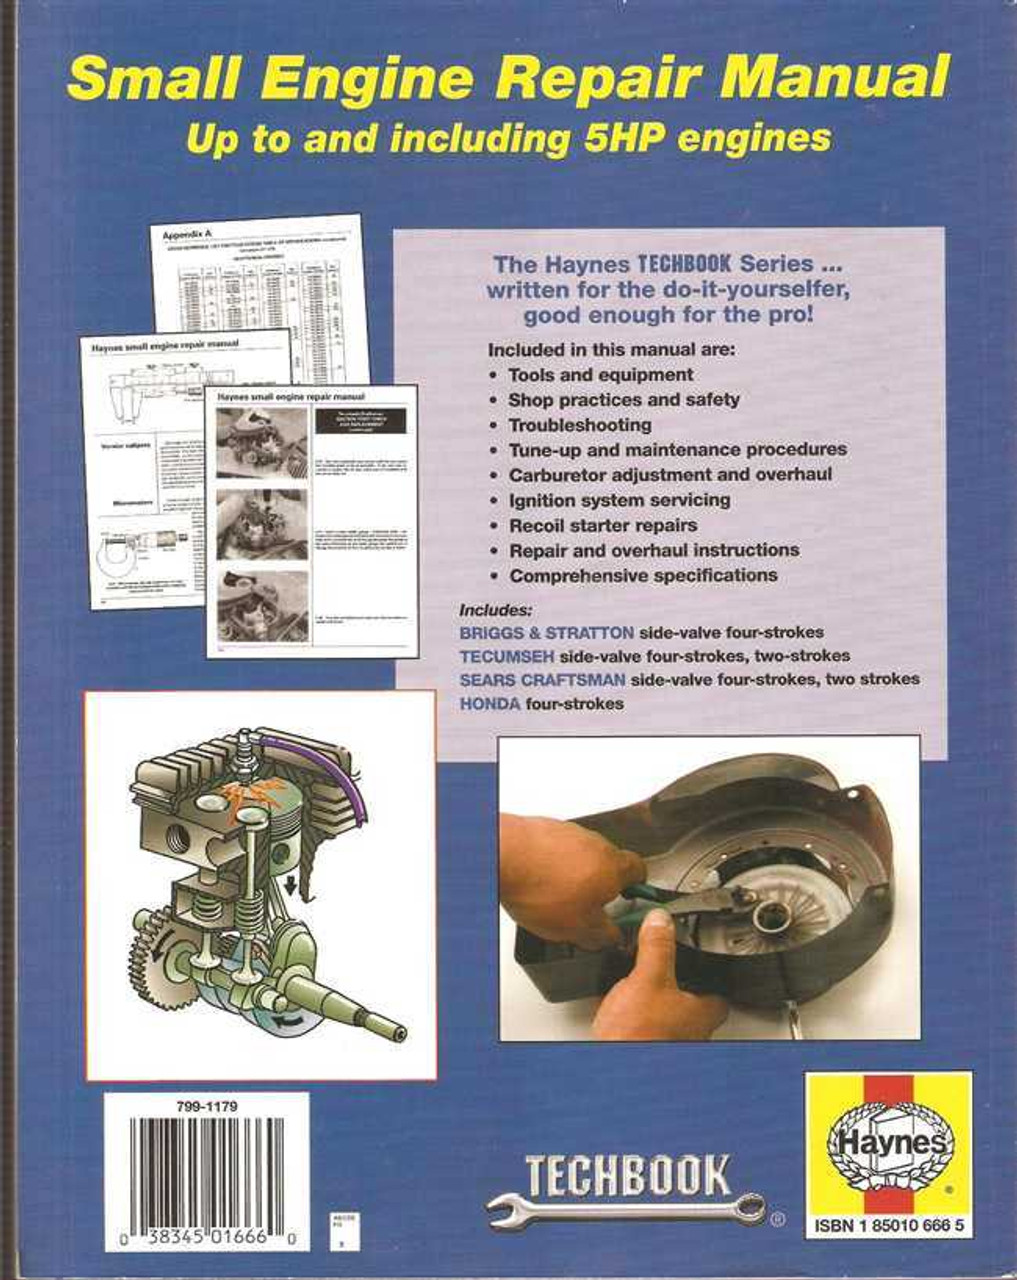 Small Engine Repair up to and including 5 HP - (Techbook Series)